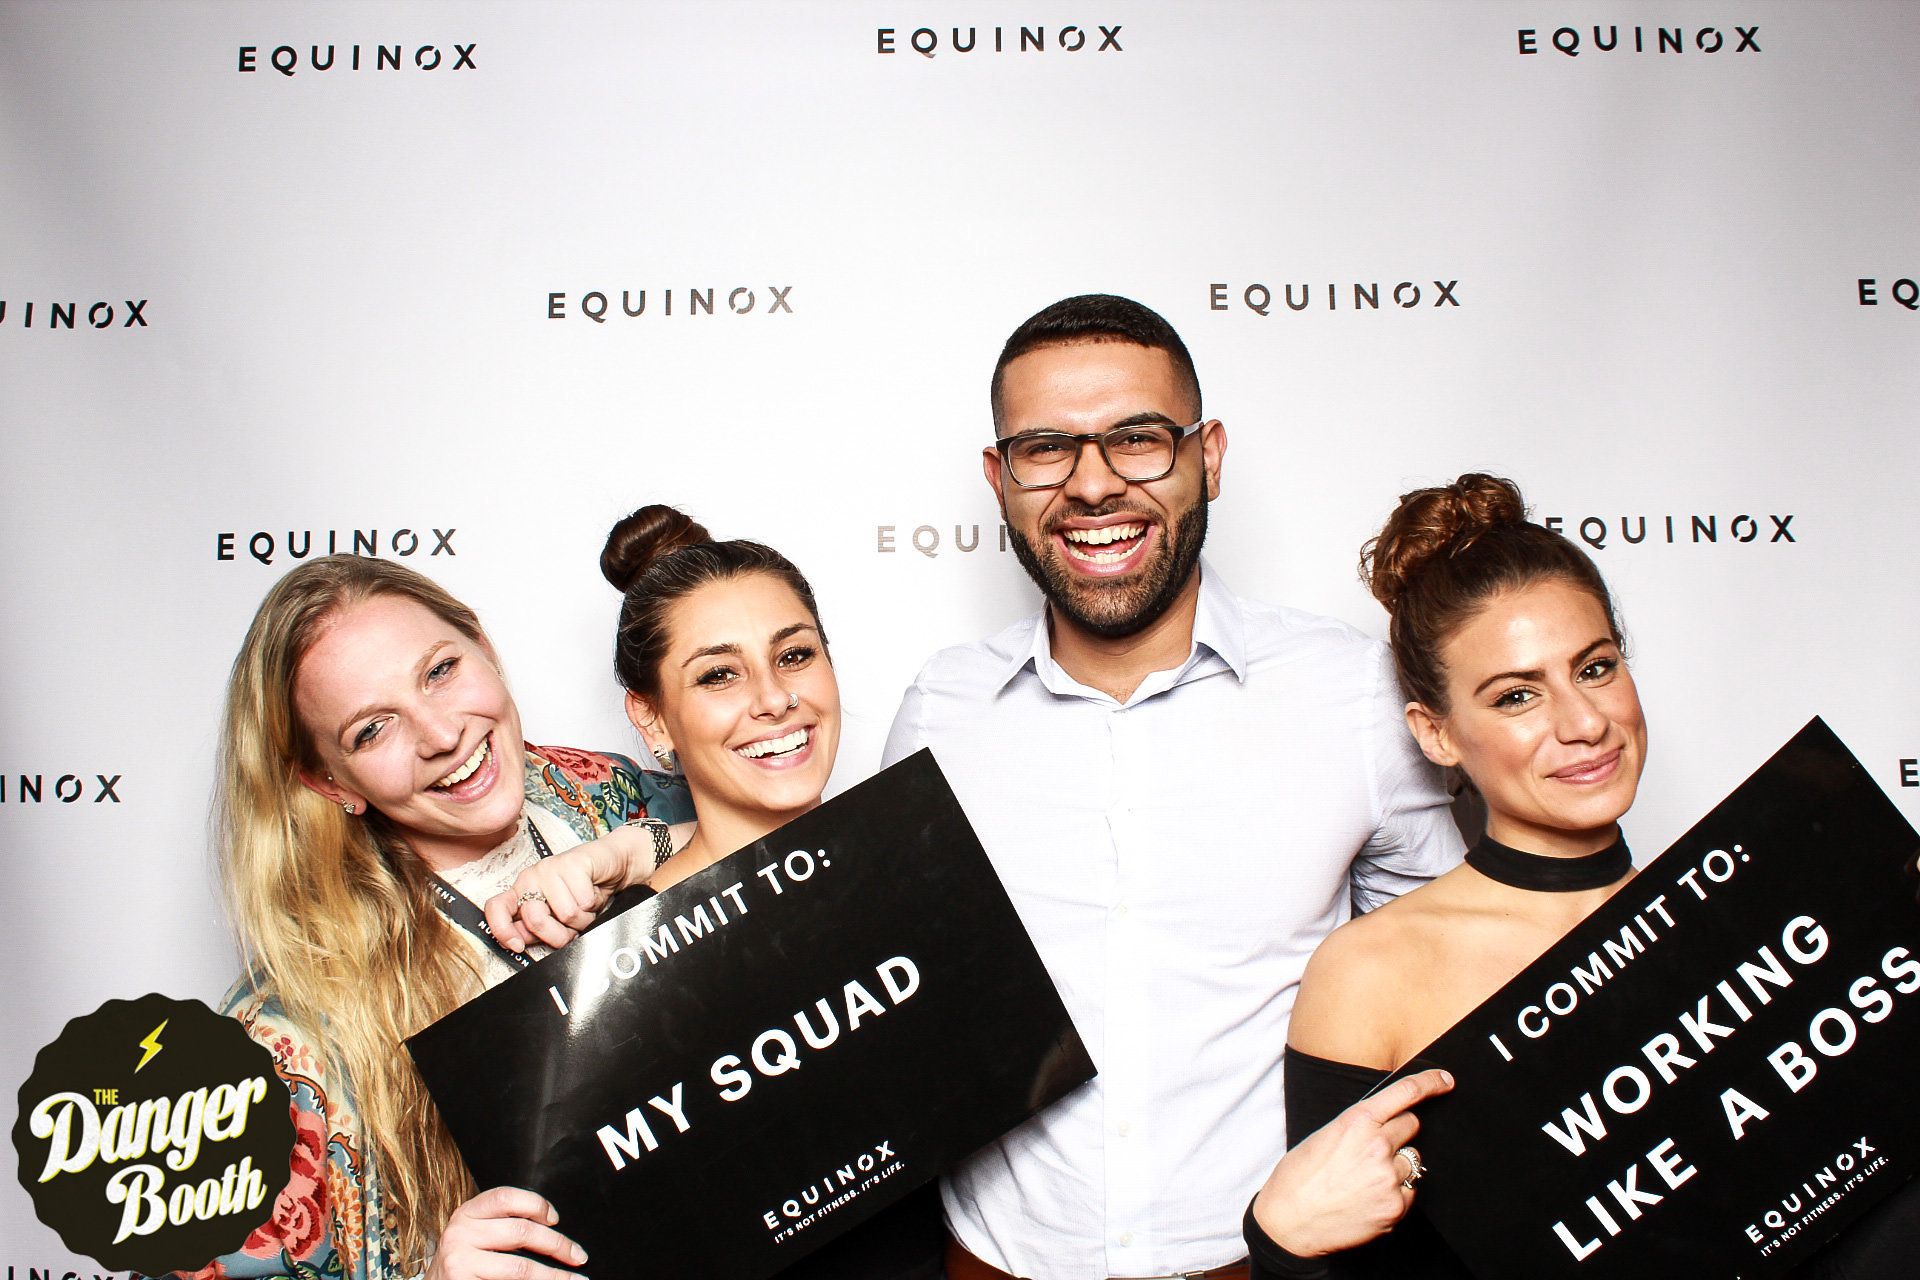 Equinox Chestnut Hill 3 Year Anniversary Party   Photo Booth